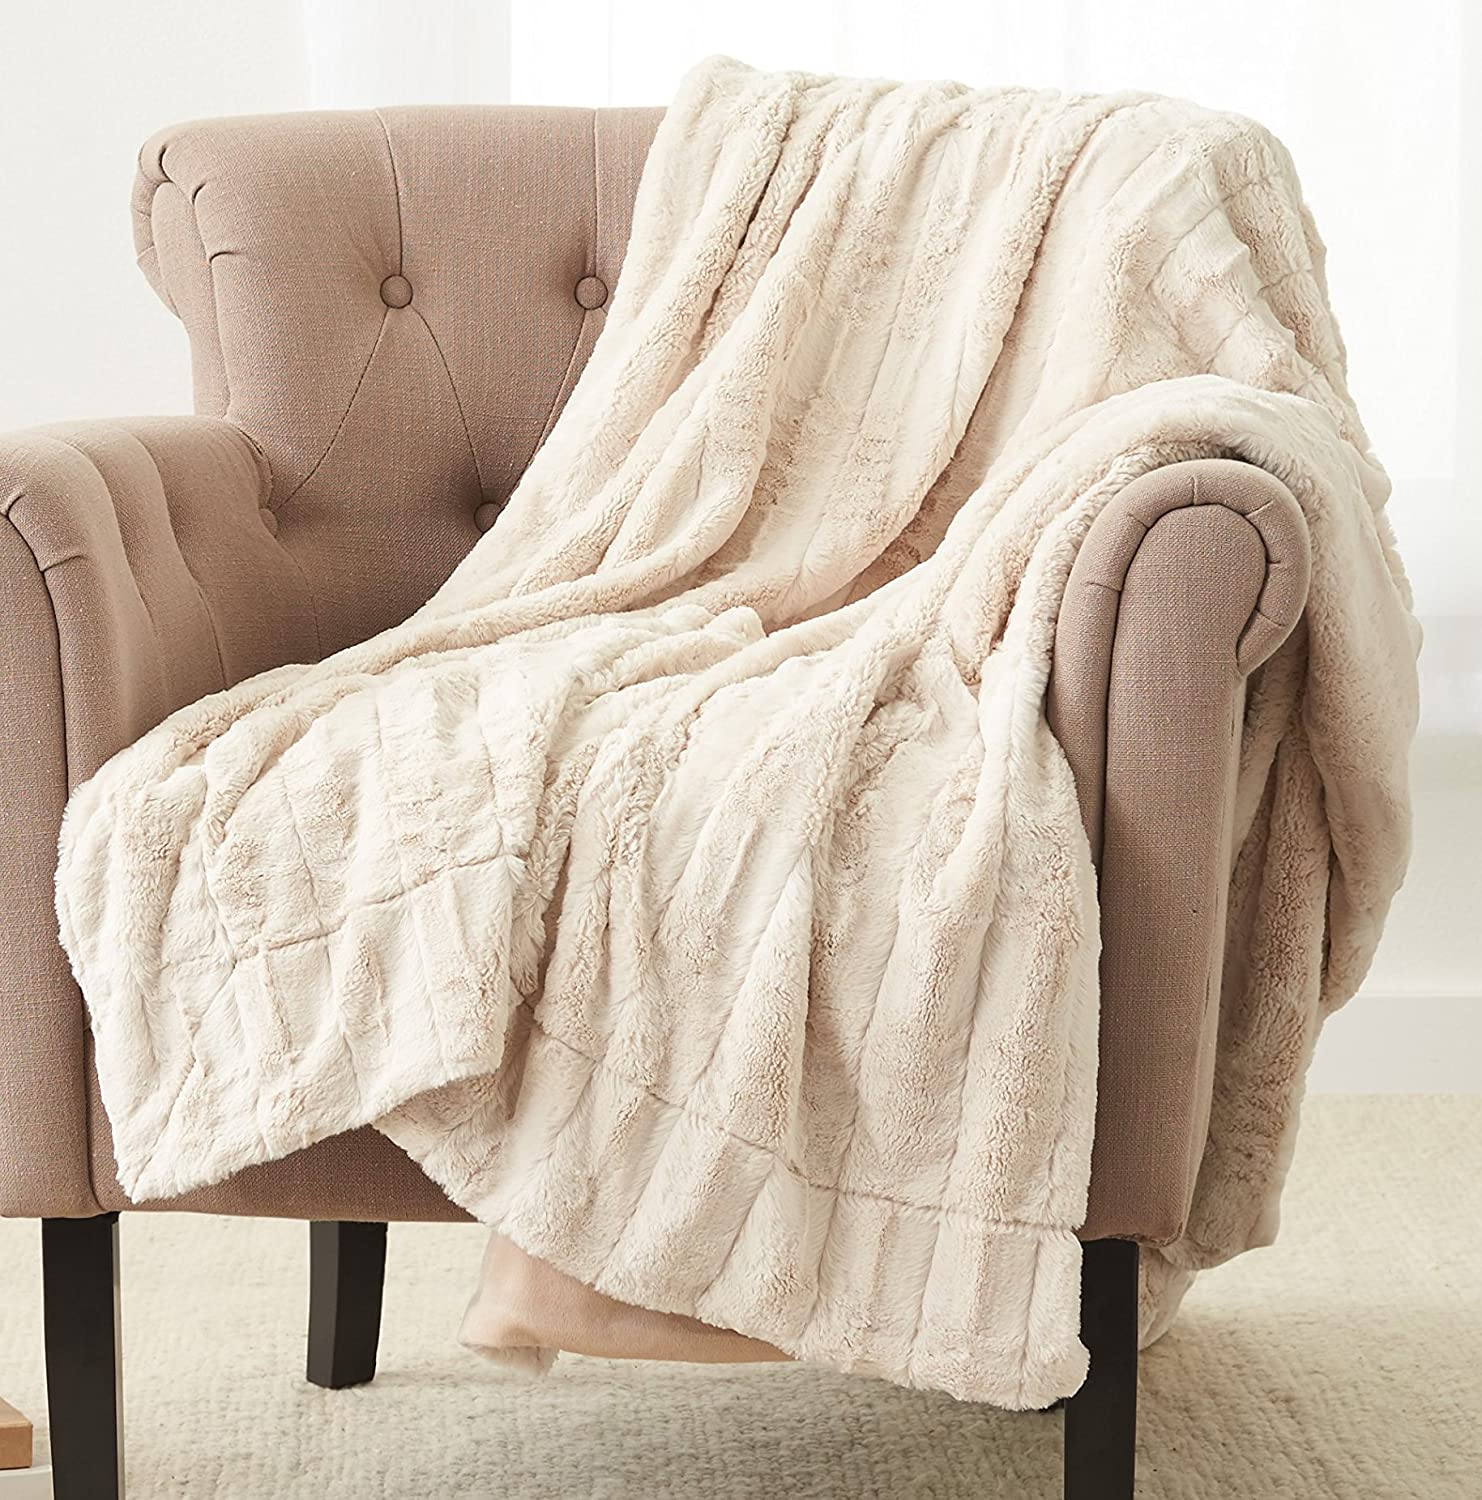 Blankets Throws Discounted Sale Ease Bedding With Style